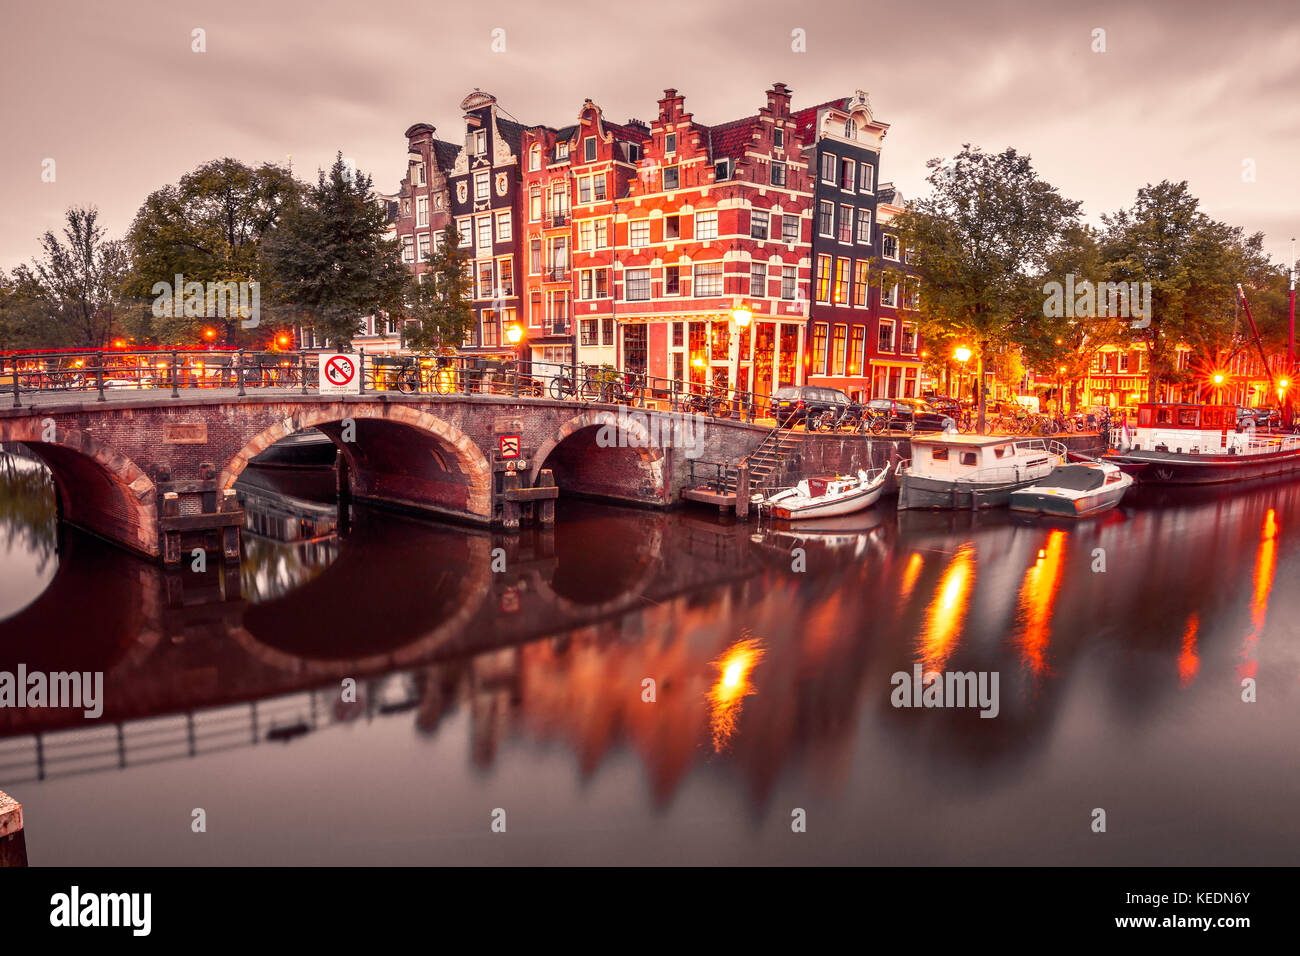 Night city view of Amsterdam canal and bridge - Stock Image